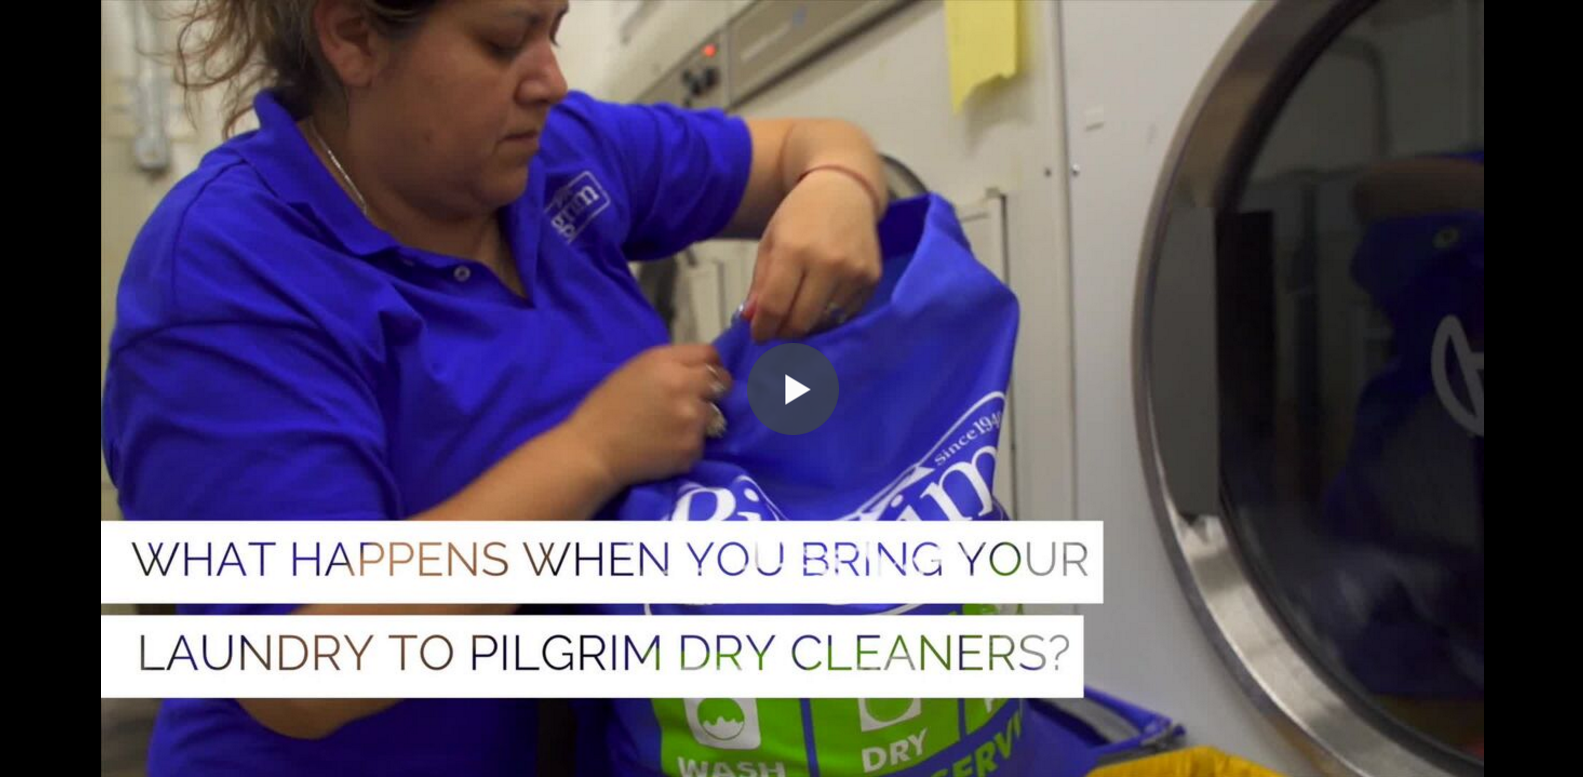 Pilgrim_Cleaners_Wash_Dry_Fold.mov.png